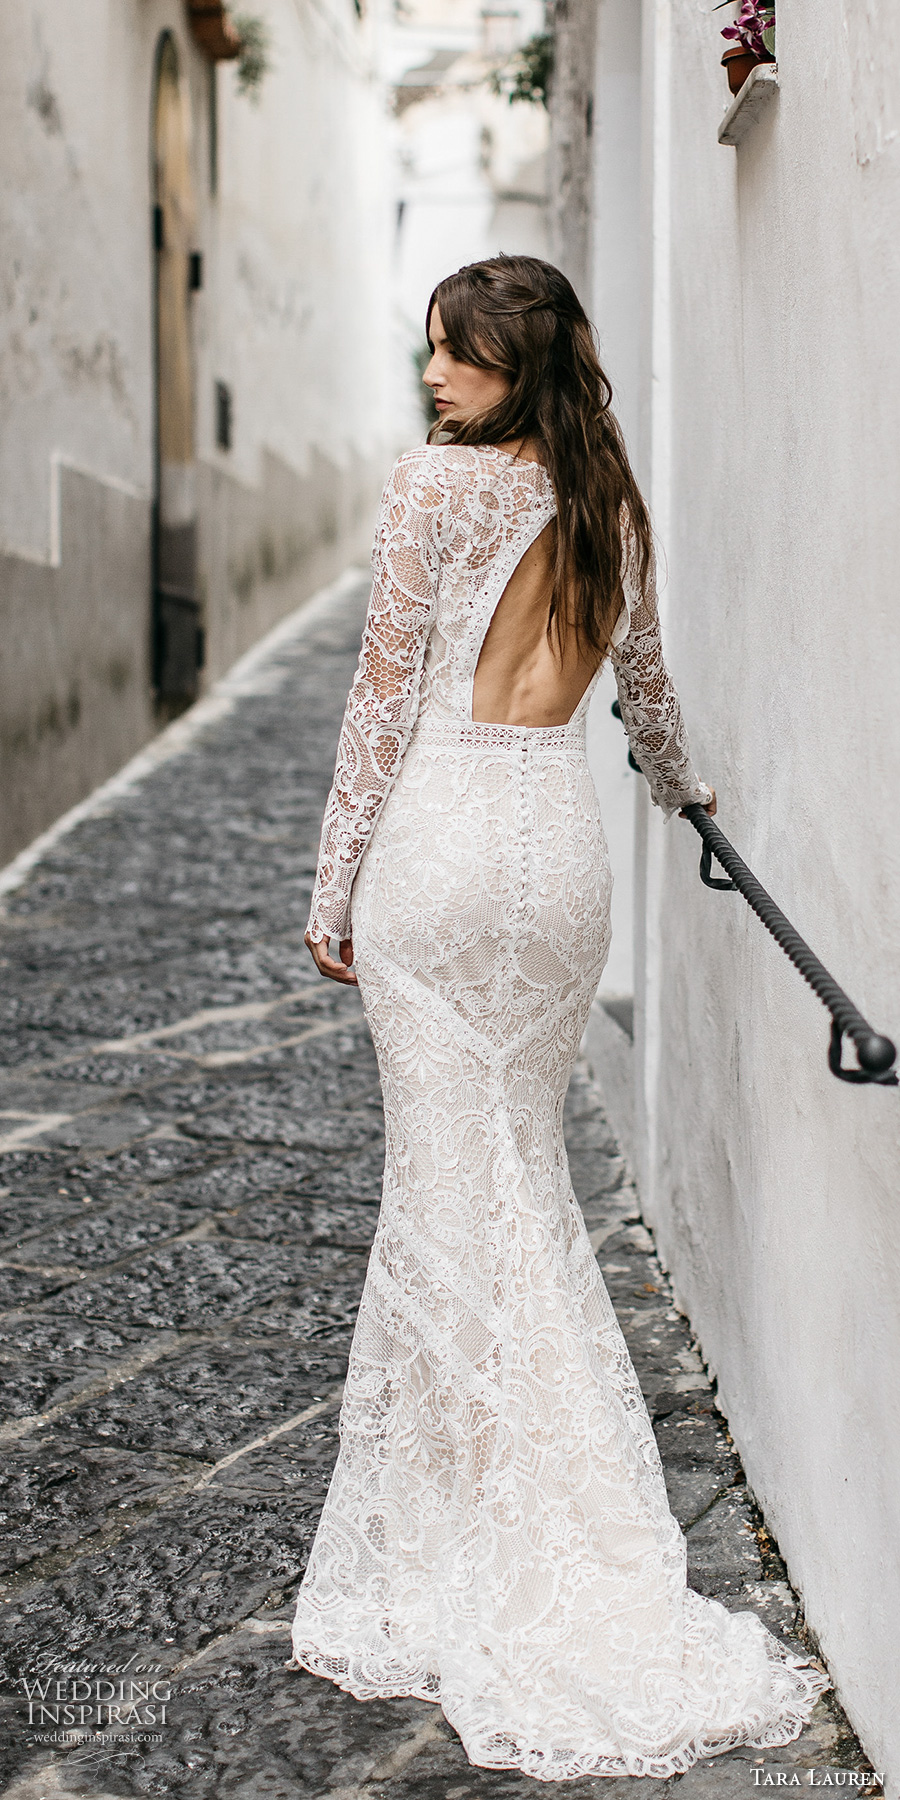 tara lauren spring 2017 bridal long sleeves jewel neck full embroidered elegant bohemian lace trumpet sheath wedding dress keyhole back short train (felix) bv